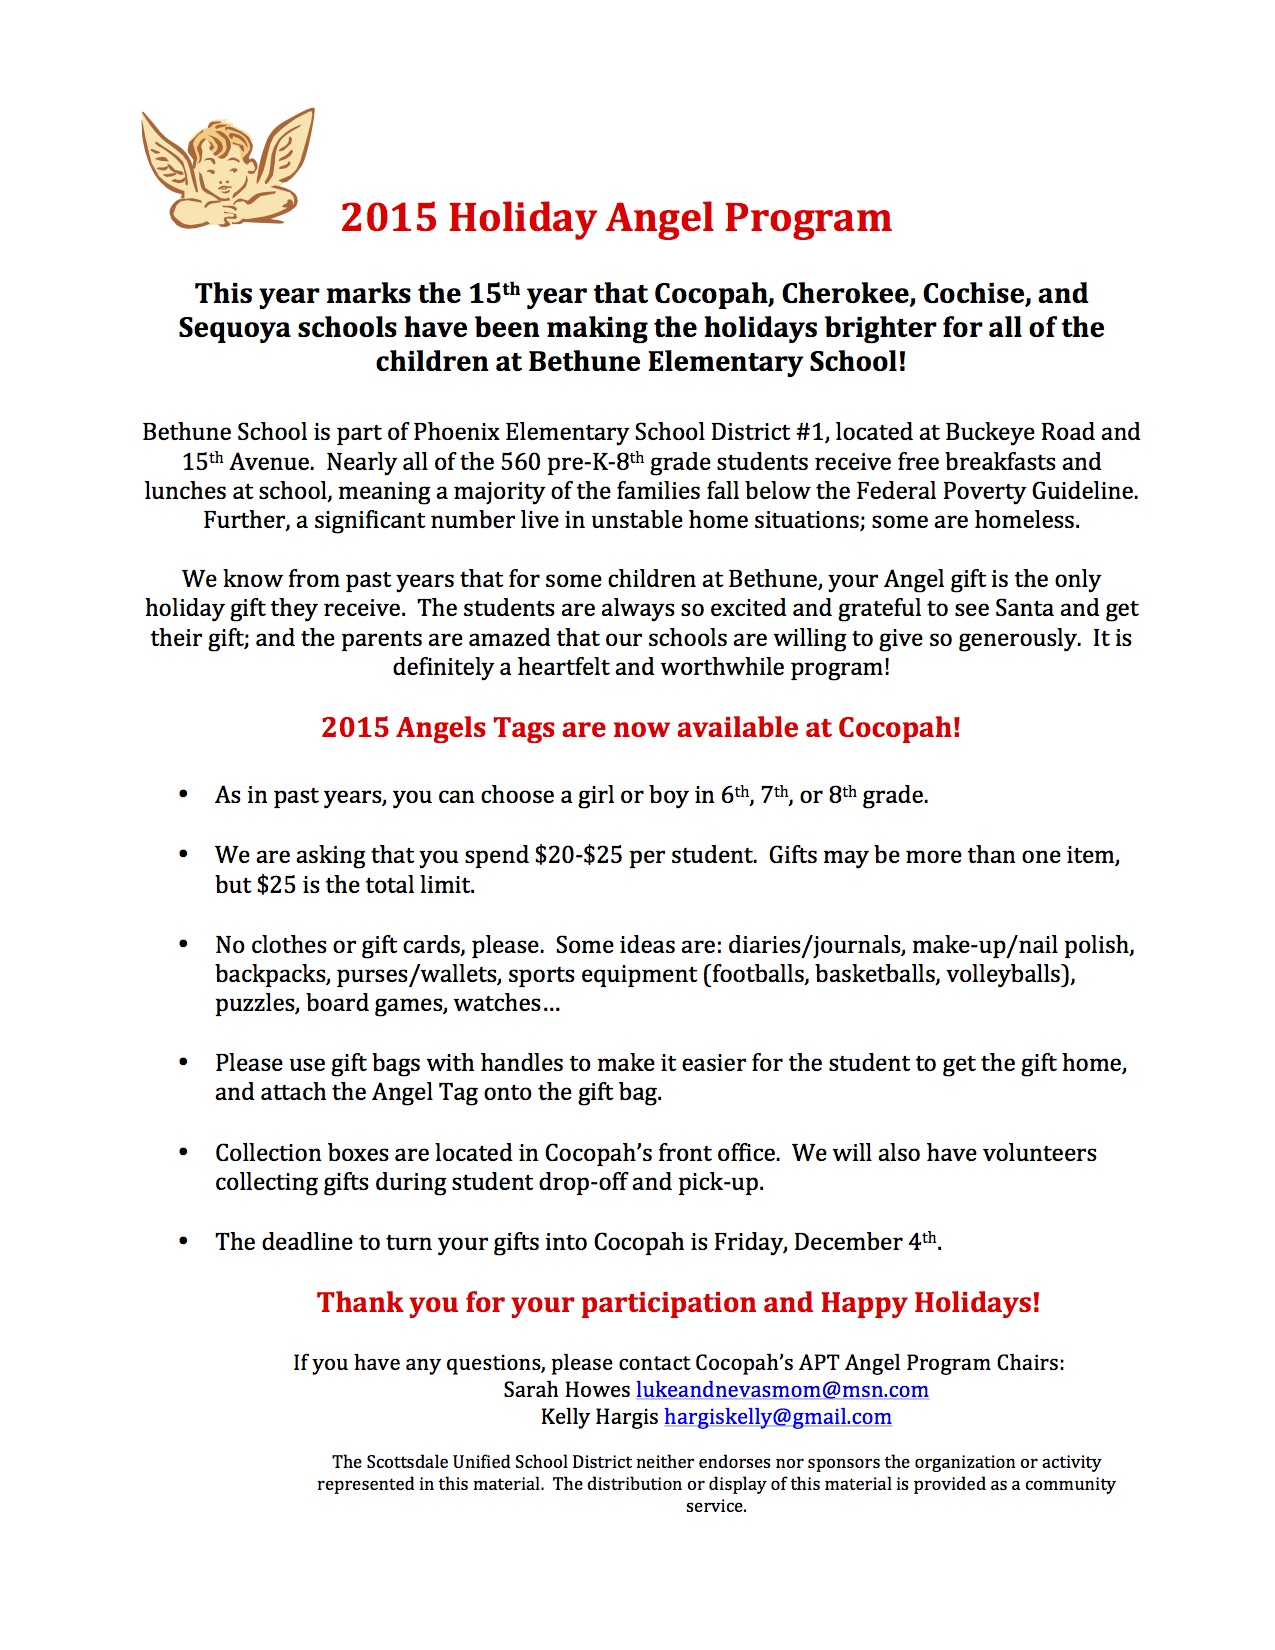 2015 Holiday Angel Letter